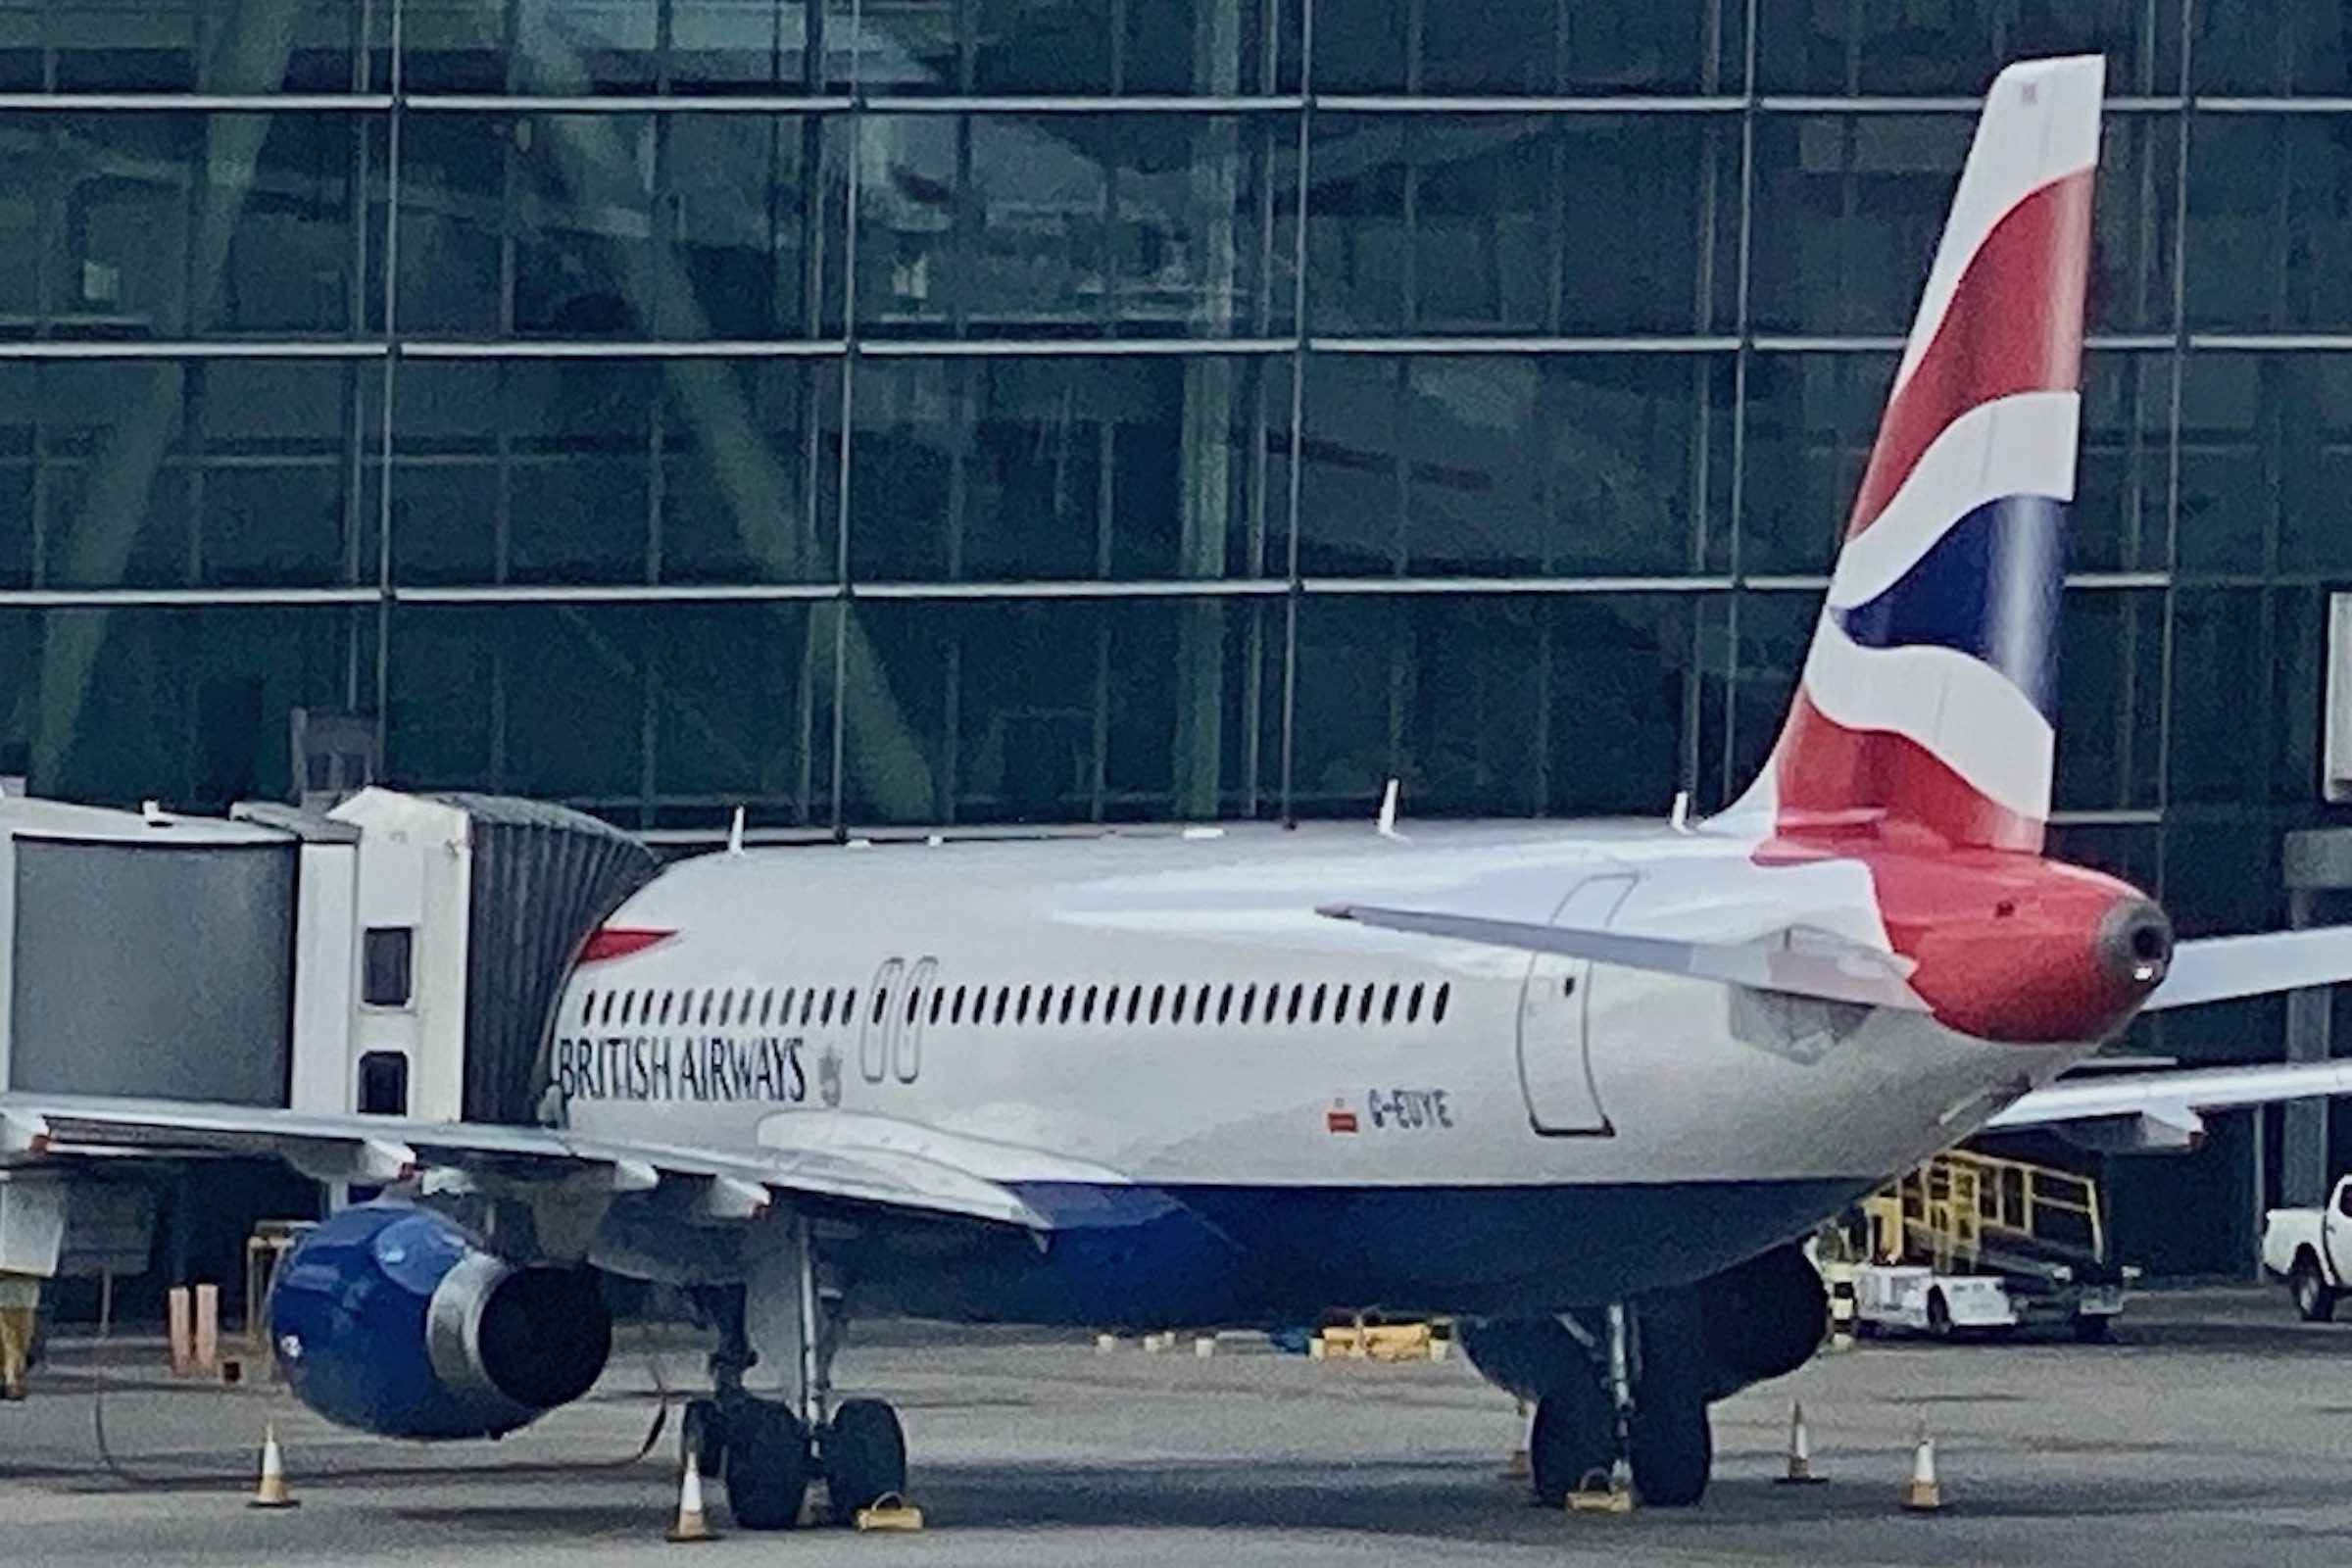 flying-in-the-new-normal-2:-interview-with-a-british-airways-cabin-crew-member